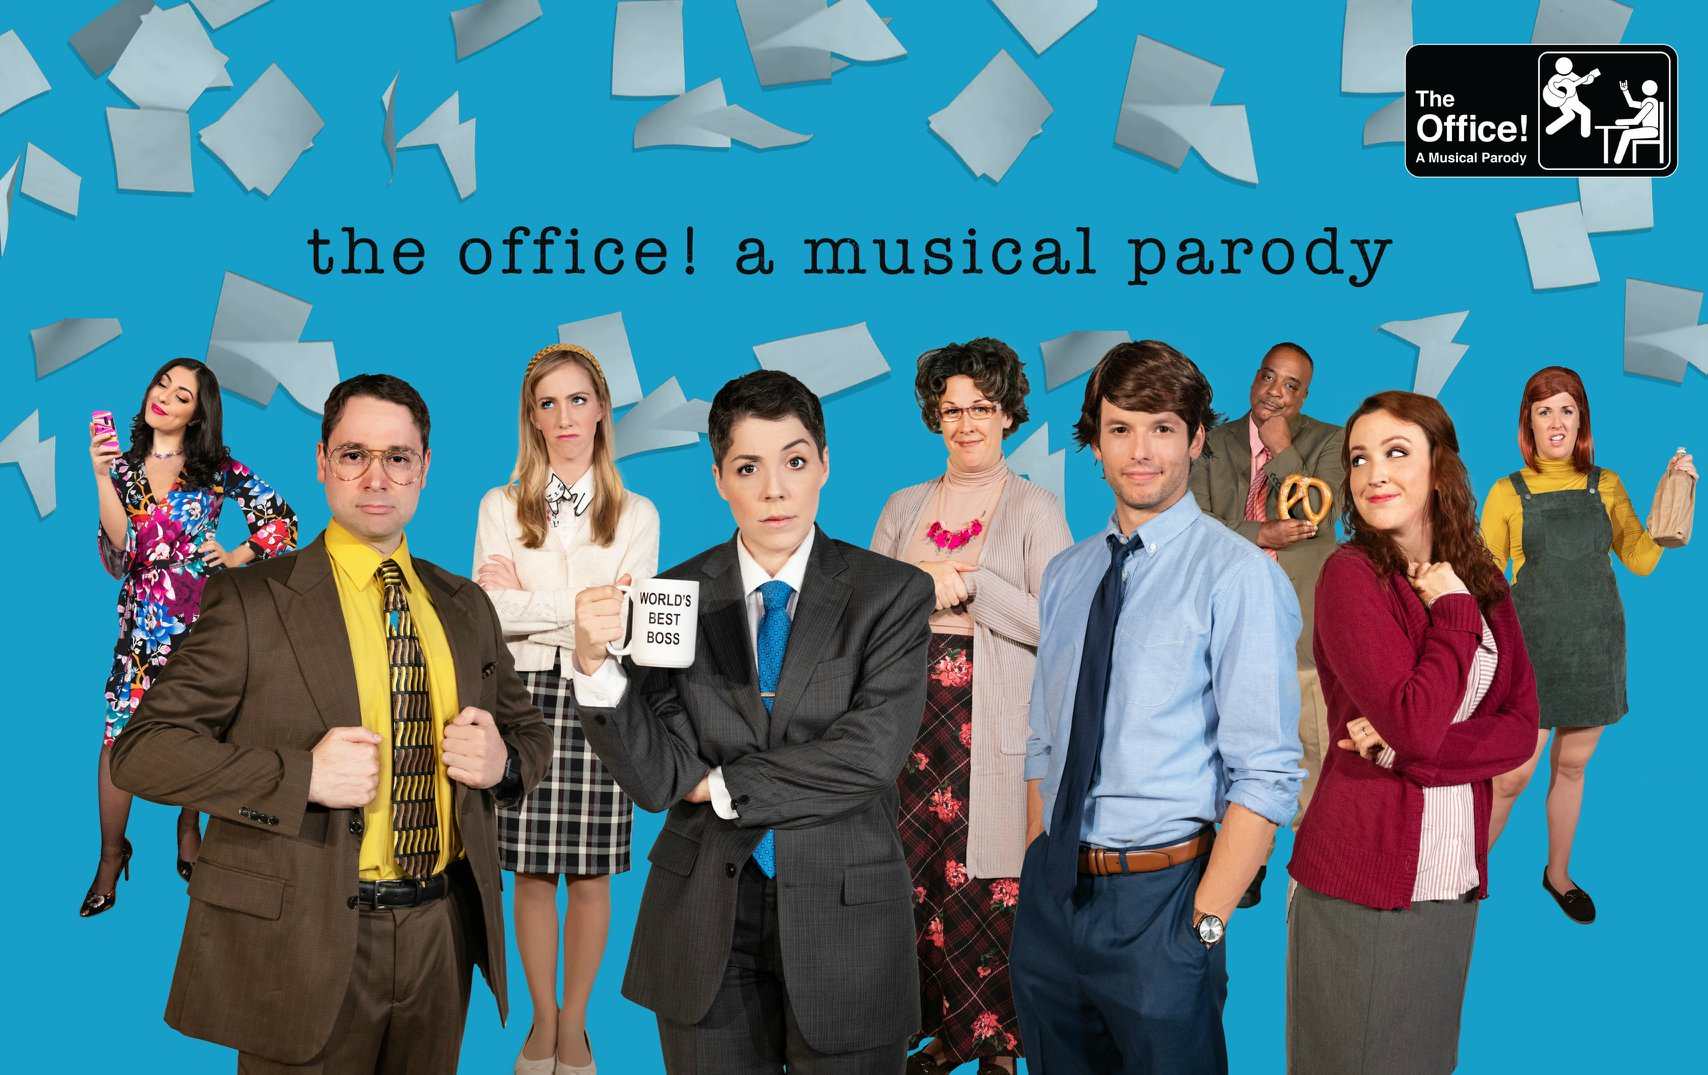 the office banner.jpg